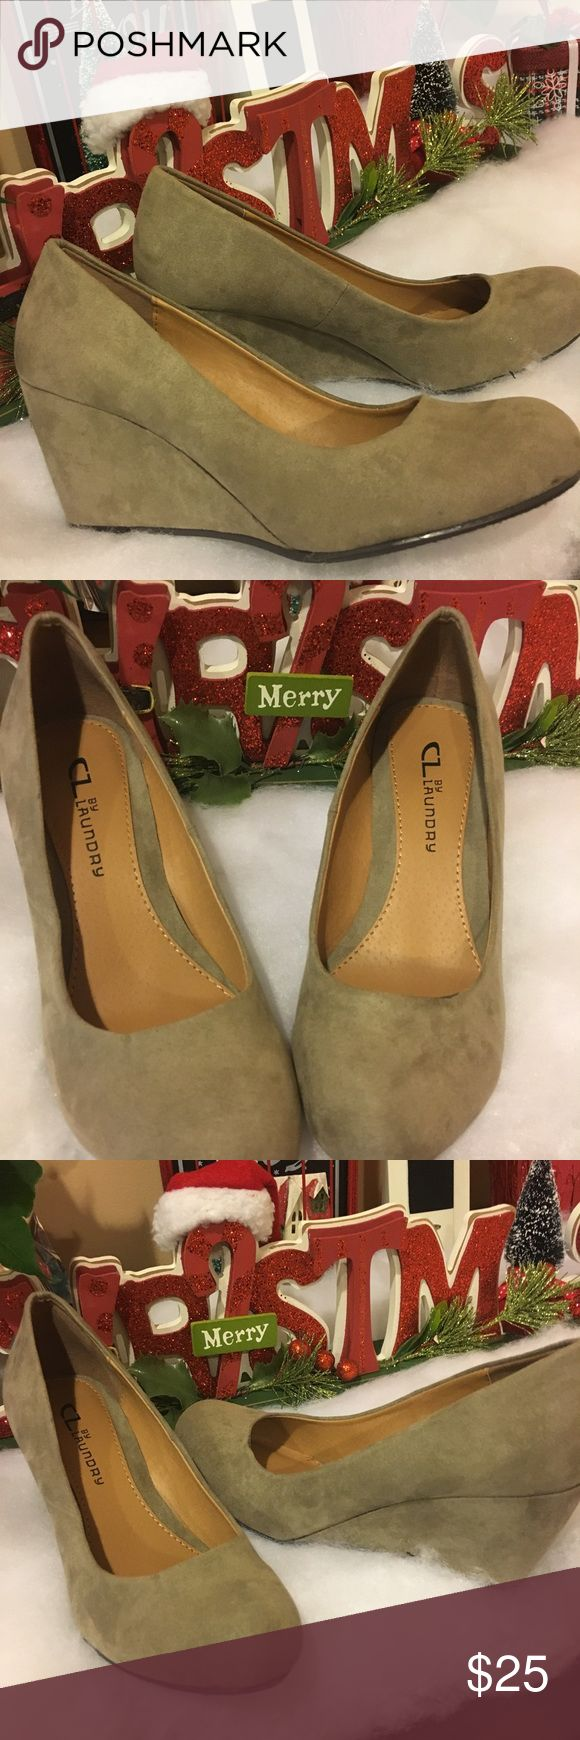 """Ladies wedge shoe in dark taupe... one day sale!!! Sleek, simple and nicely understated! The CL by Laundry Nima is the perfect wedge to pump up your look.Never worn but has a little smug on the top, hardly noticeable.  Faux suede upper Round toe 2¾"""" covered wedge heel Synthetic sole Imported cl by laundry Shoes Wedges"""